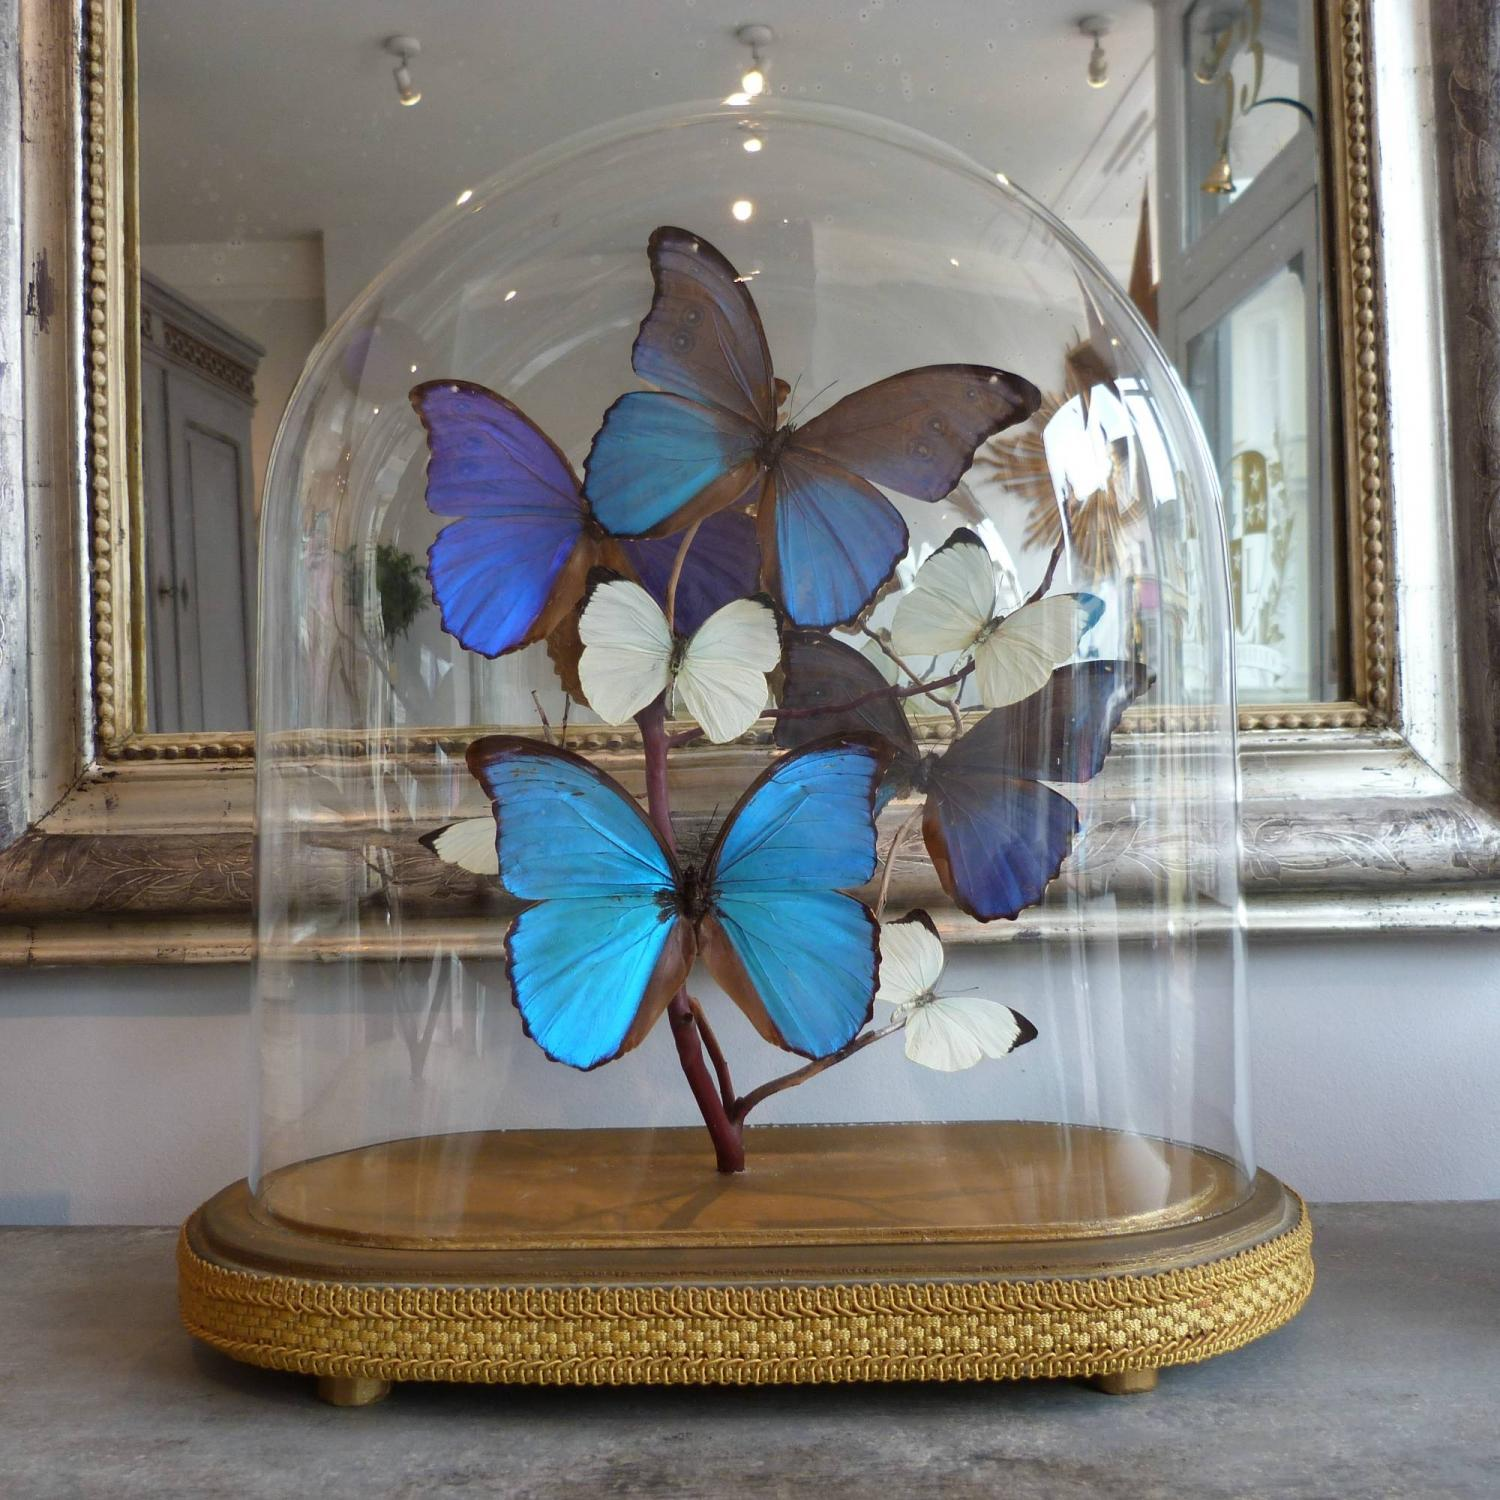 VINTAGE GLASS DOME WITH BLUE & WHITE BUTTERFLIES